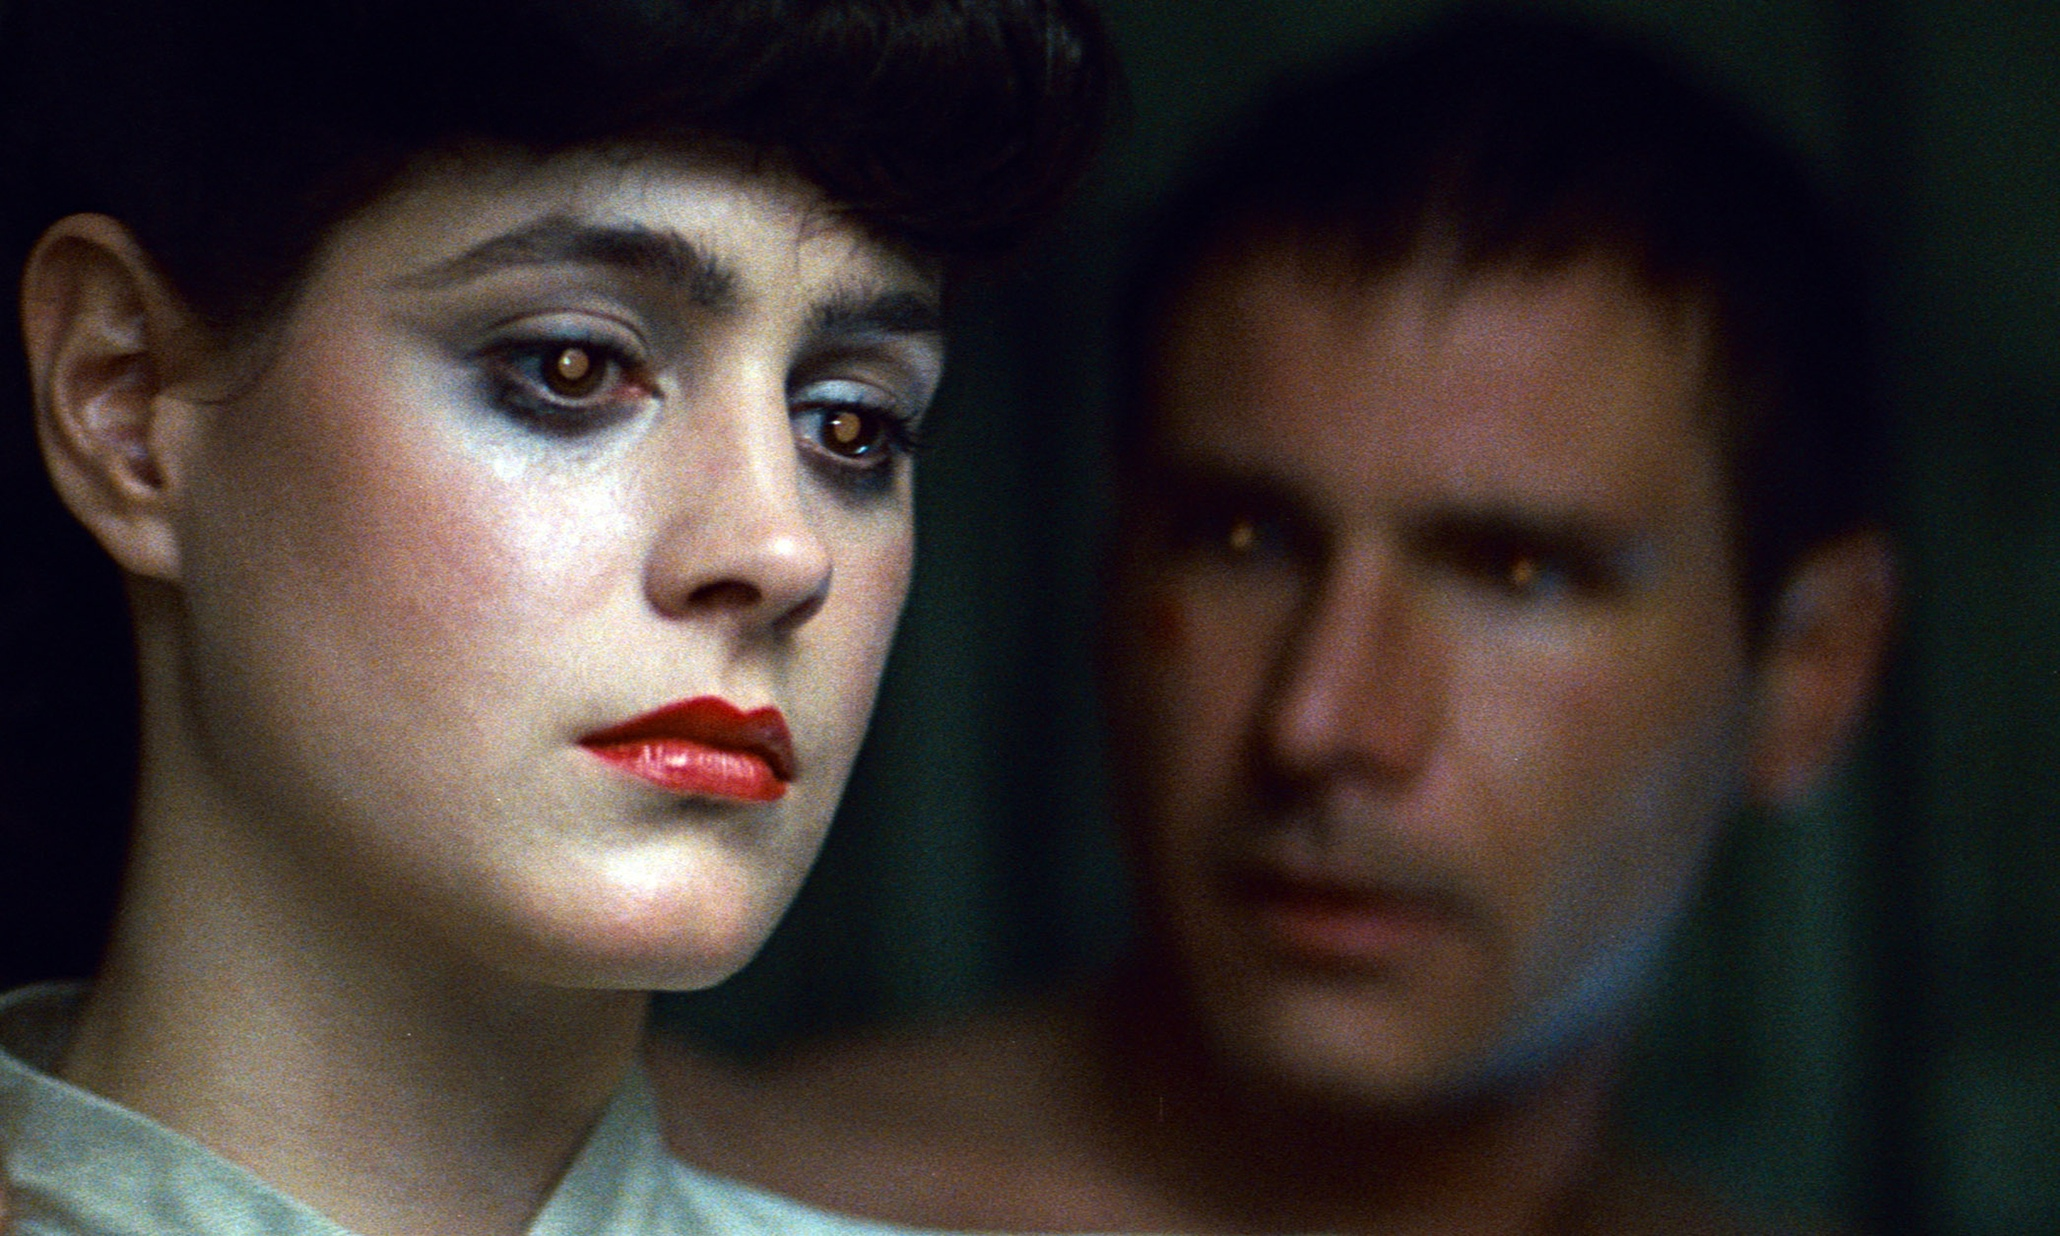 will blade runner be ruined the eternal axiom an error occurred